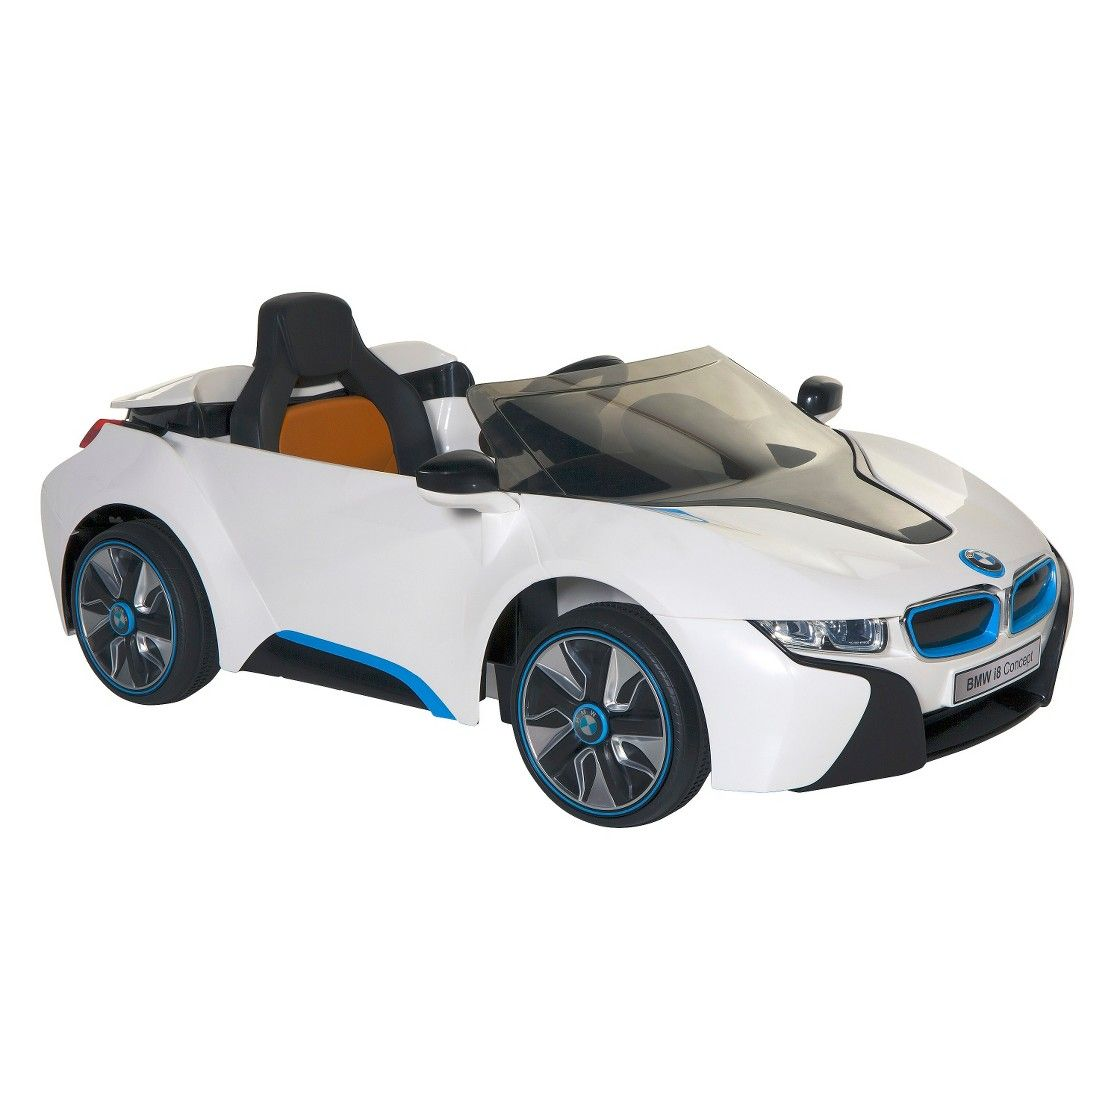 BMW Concept Electric Ride On Car, White/Black/Blue: Item   6 Volt BMW  Concept Electric Ride On Car. Enjoy A Fun Riding Experience On This BMW  Concept ...